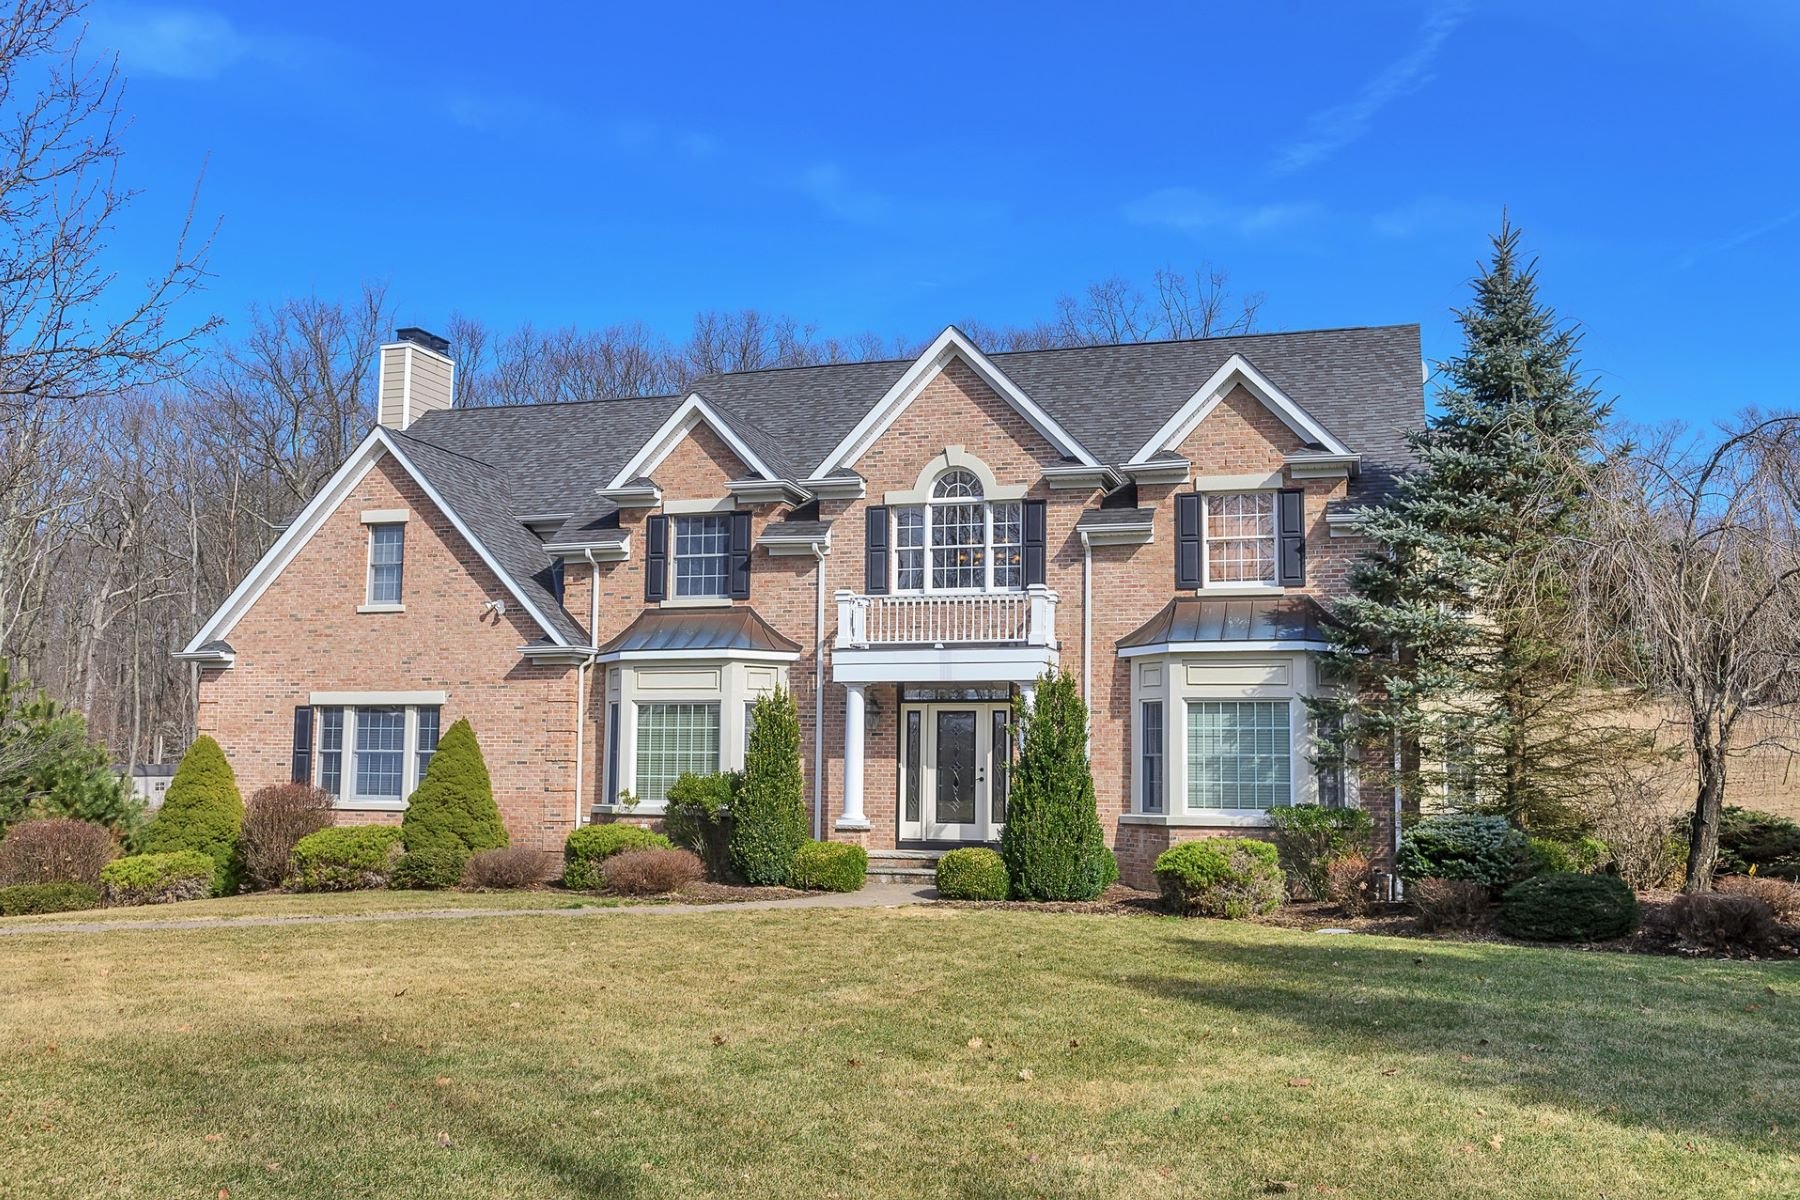 Single Family Homes for Sale at Welcome Home! 4 Staffordshire Ct Sparta, New Jersey 07871 United States